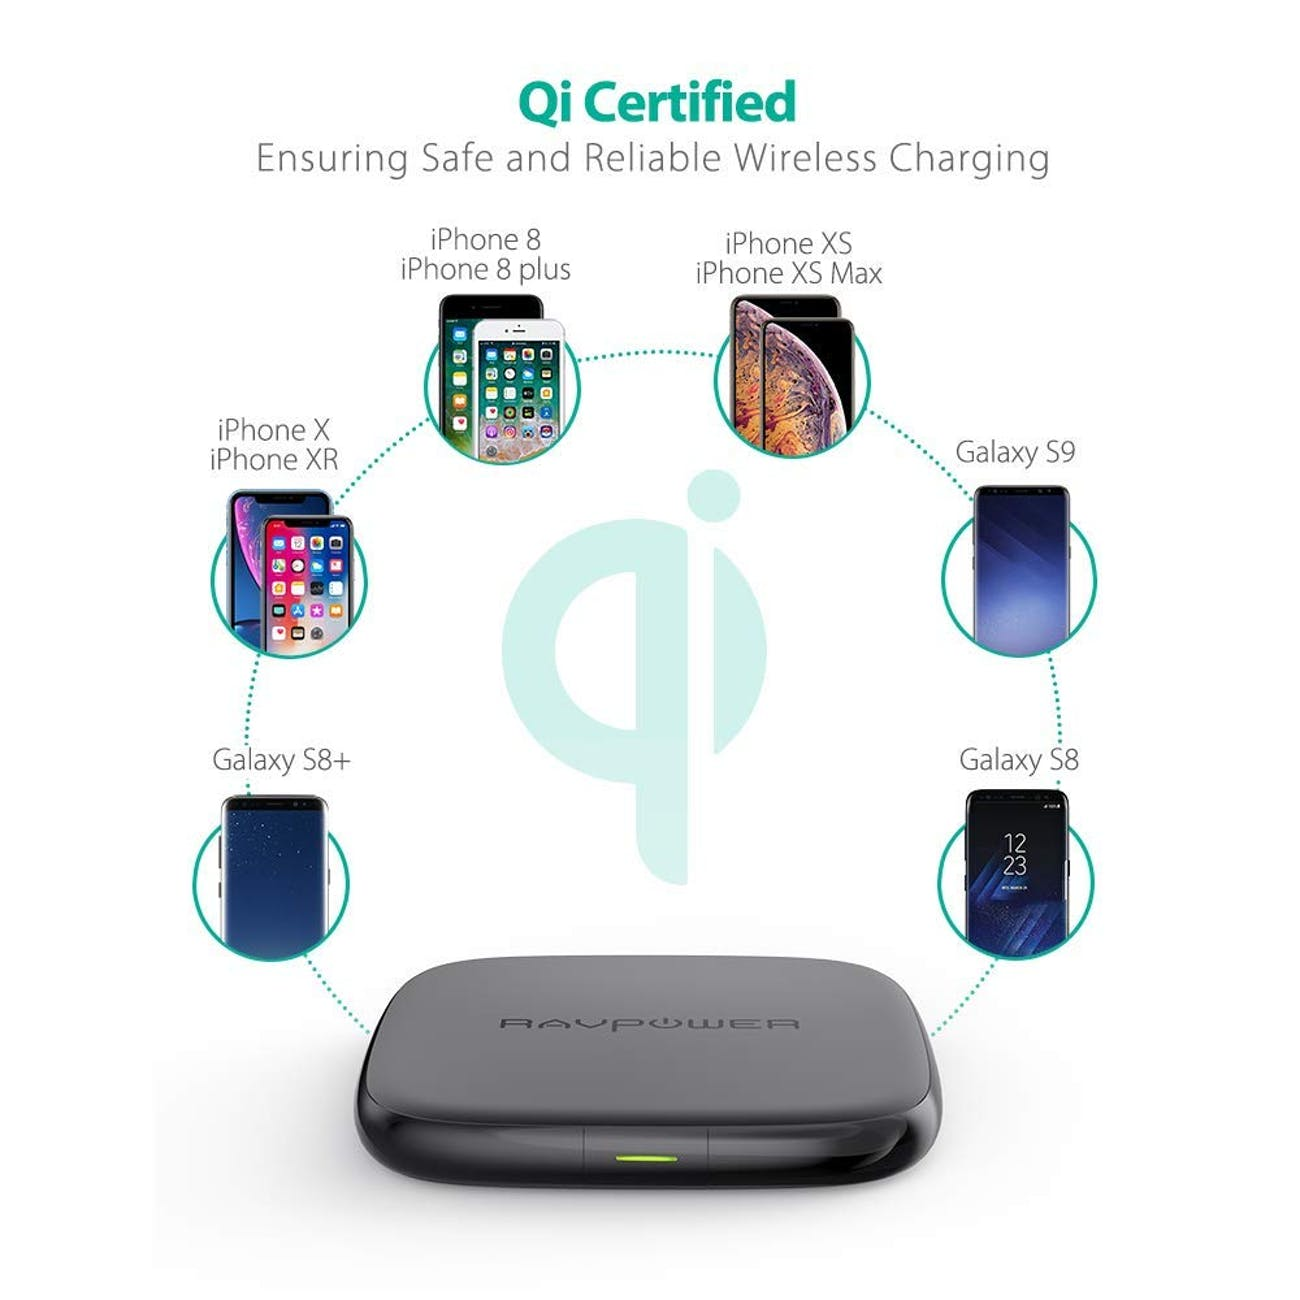 RAVPower Qi-Certified 10W Fast Wireless Charger for Galaxy S9+ S9 S8+ S8 Note 8 with HyperAir,7.5W Compatible iPhone Xs MAX XR XS X 8 Plus, and All Qi-Enabled Devices (QC 3.0 Adapter)